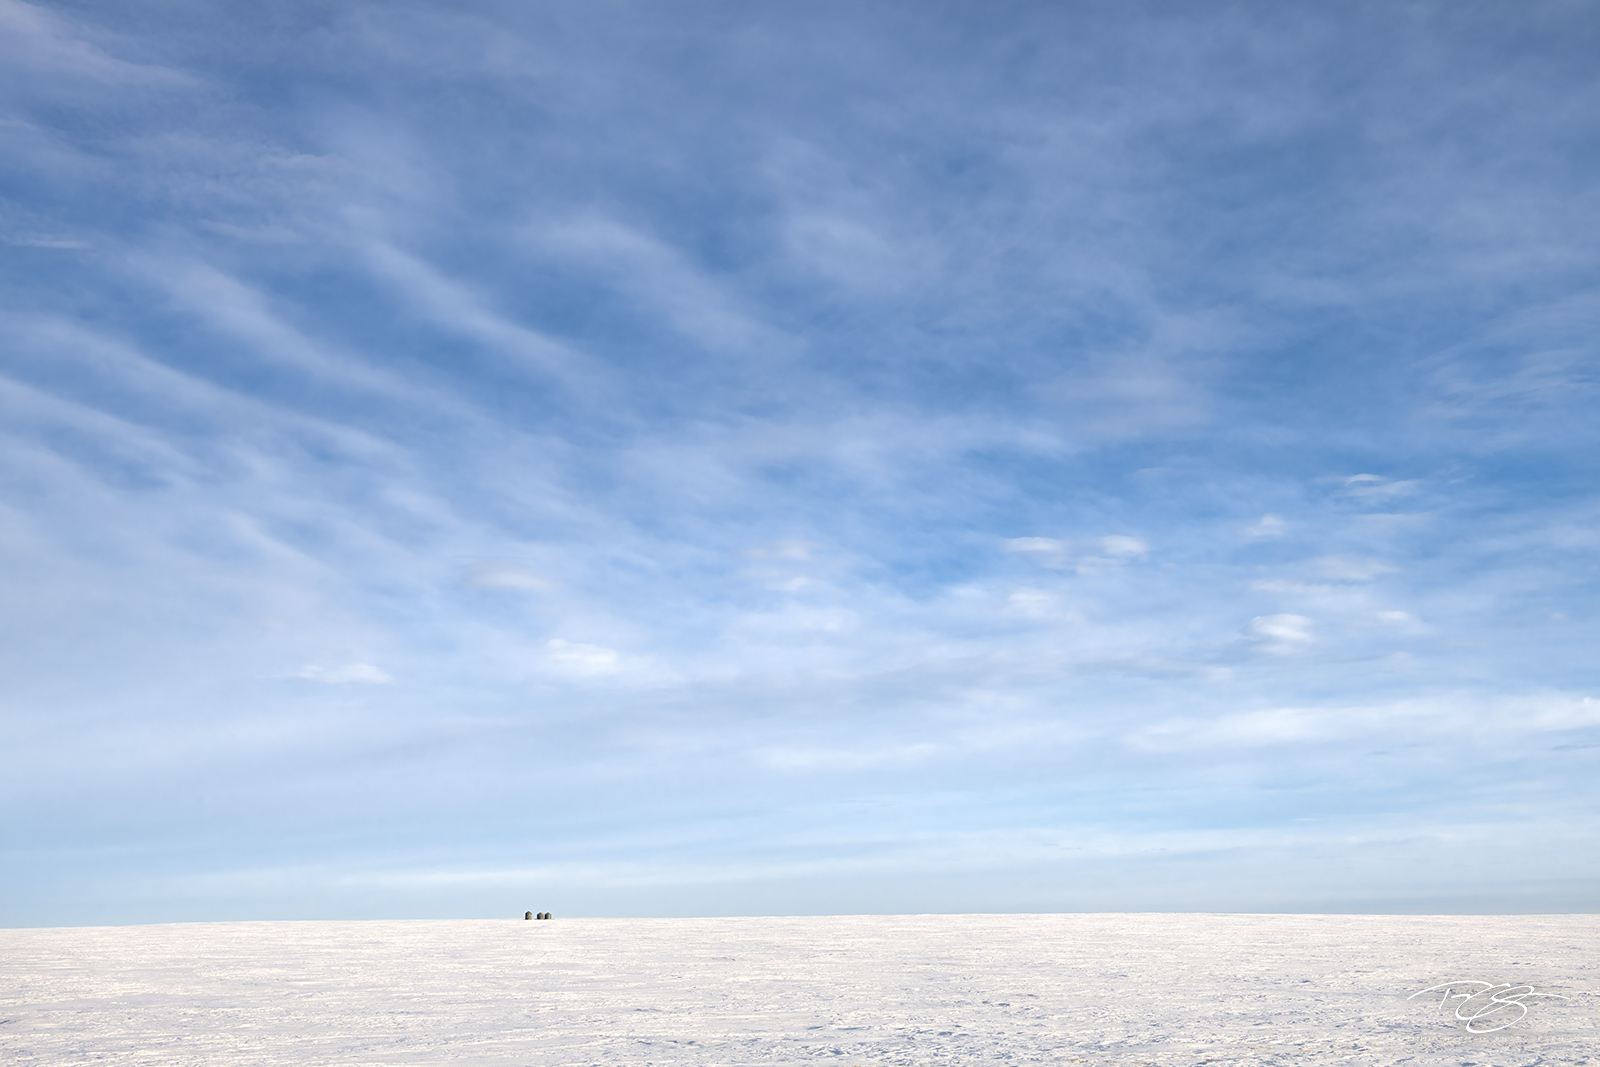 Silos in the great expanse of the Winter prairie